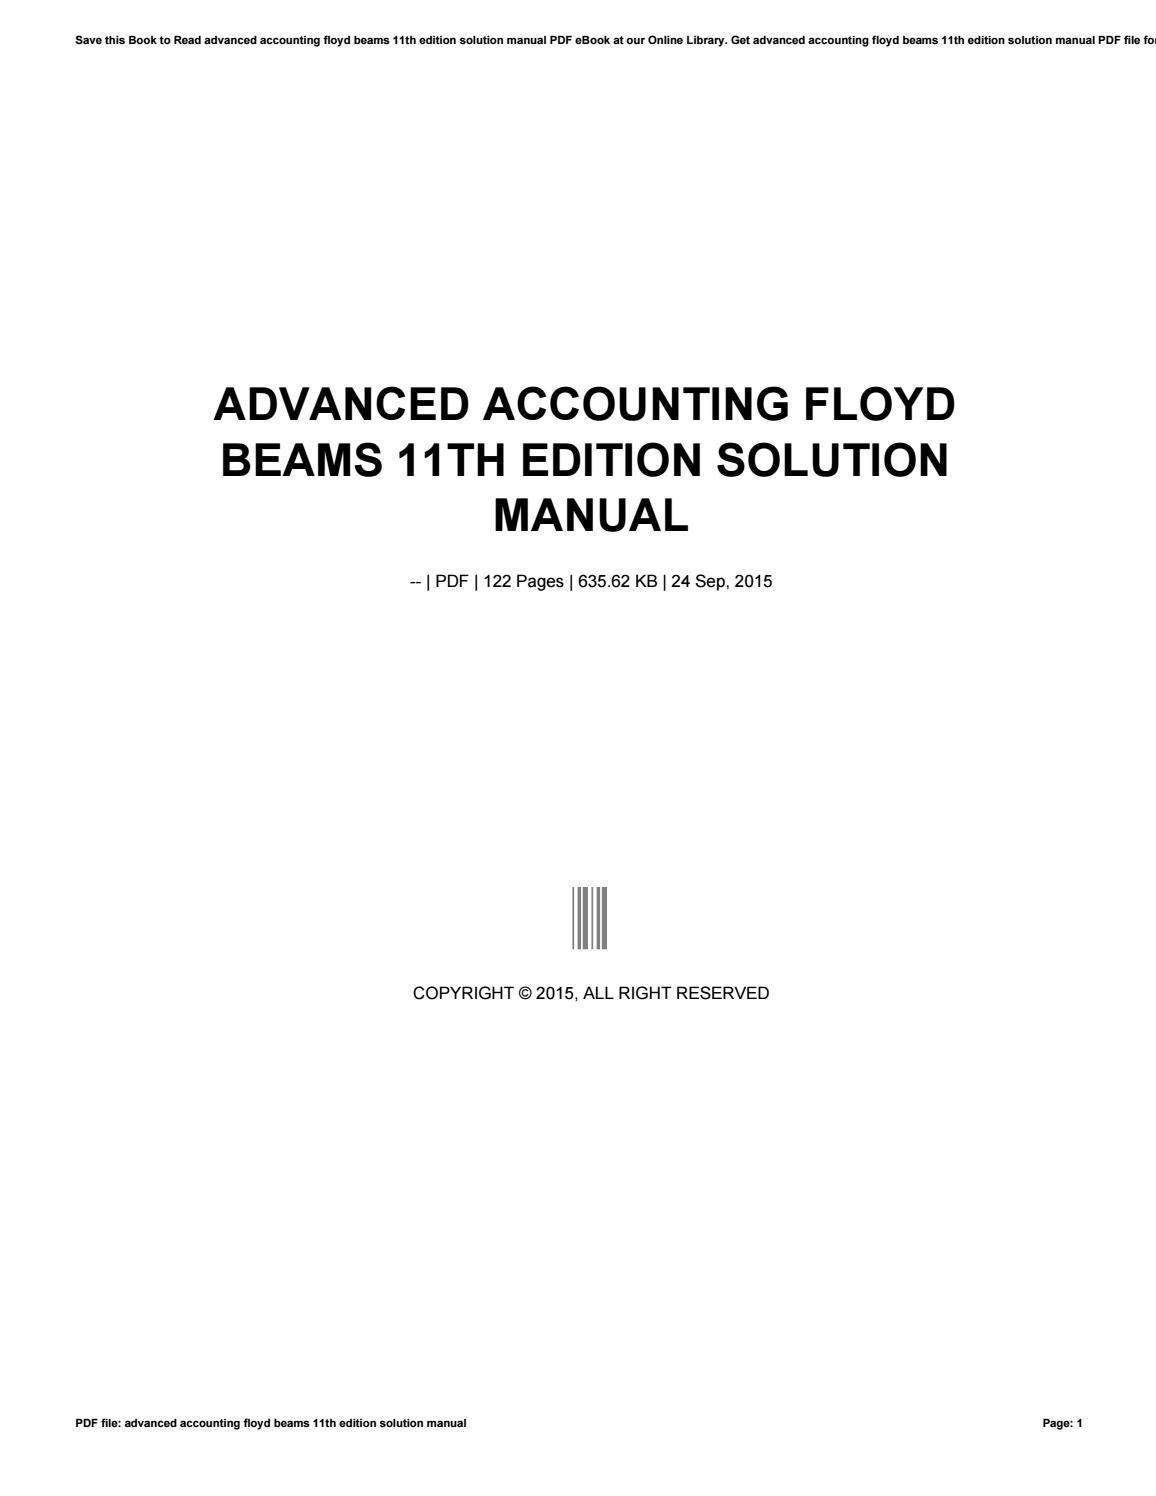 Advanced accounting floyd beams 11th edition solution manual by maildx92 -  issuu